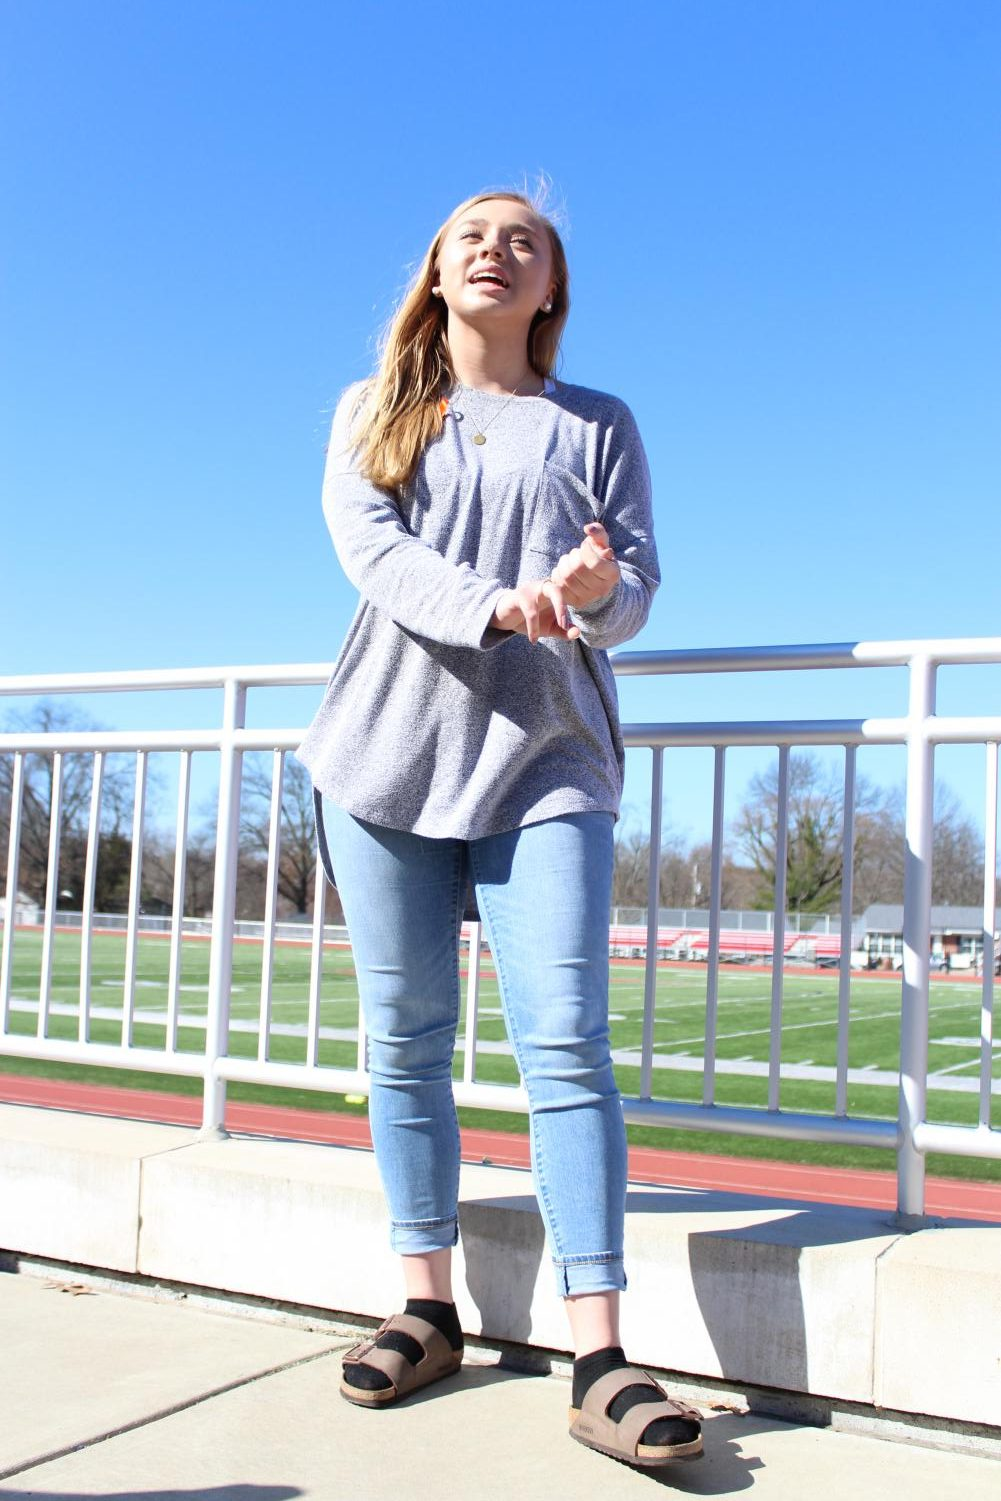 Ally+Ortmann%2C+sophomore%2C+shares+her+message.